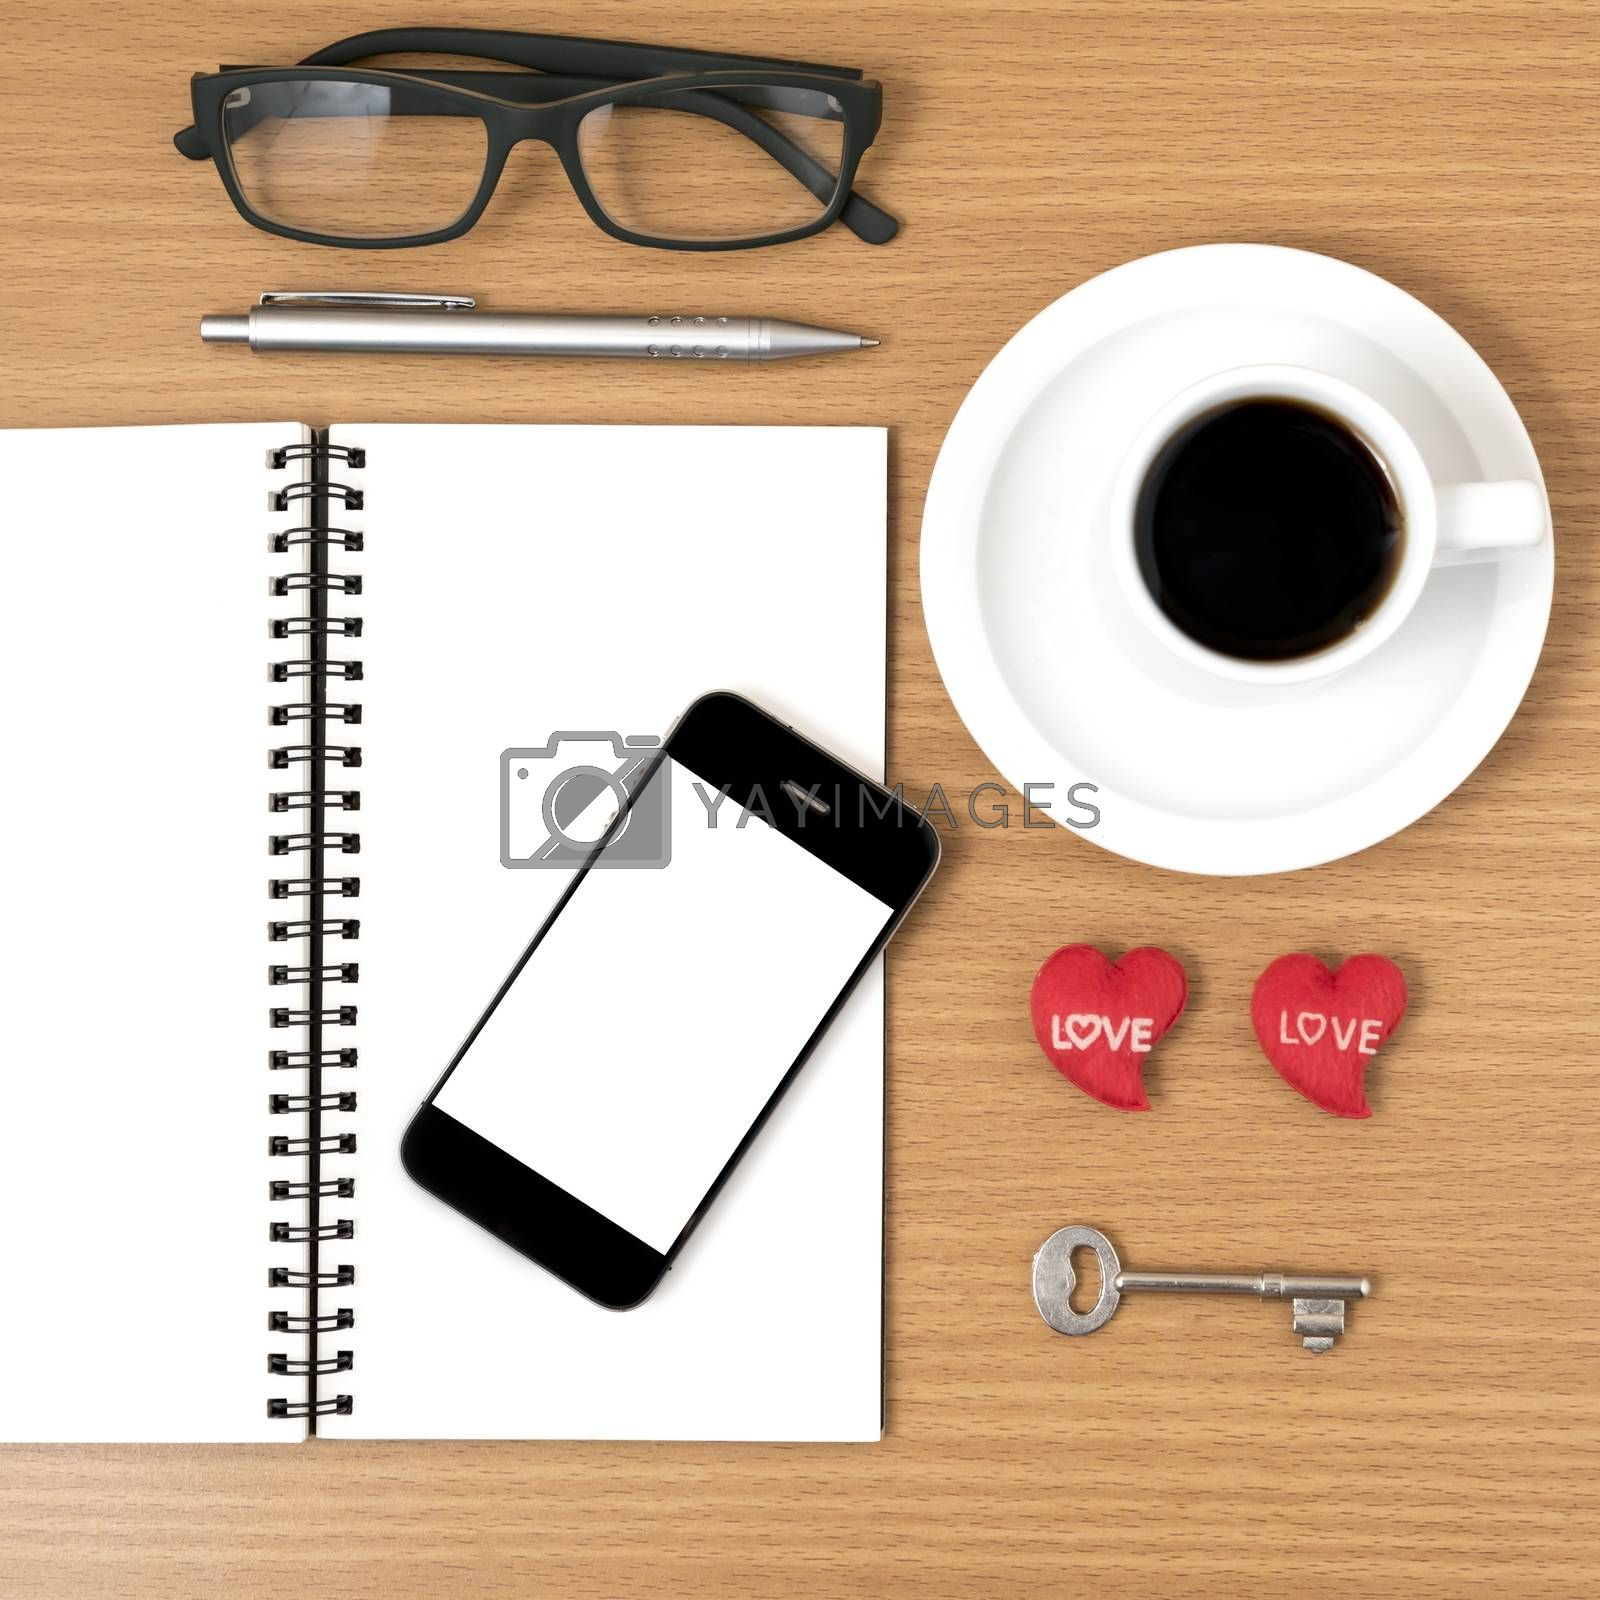 office desk : coffee and phone with key,eyeglasses,notepad,heart on wood background